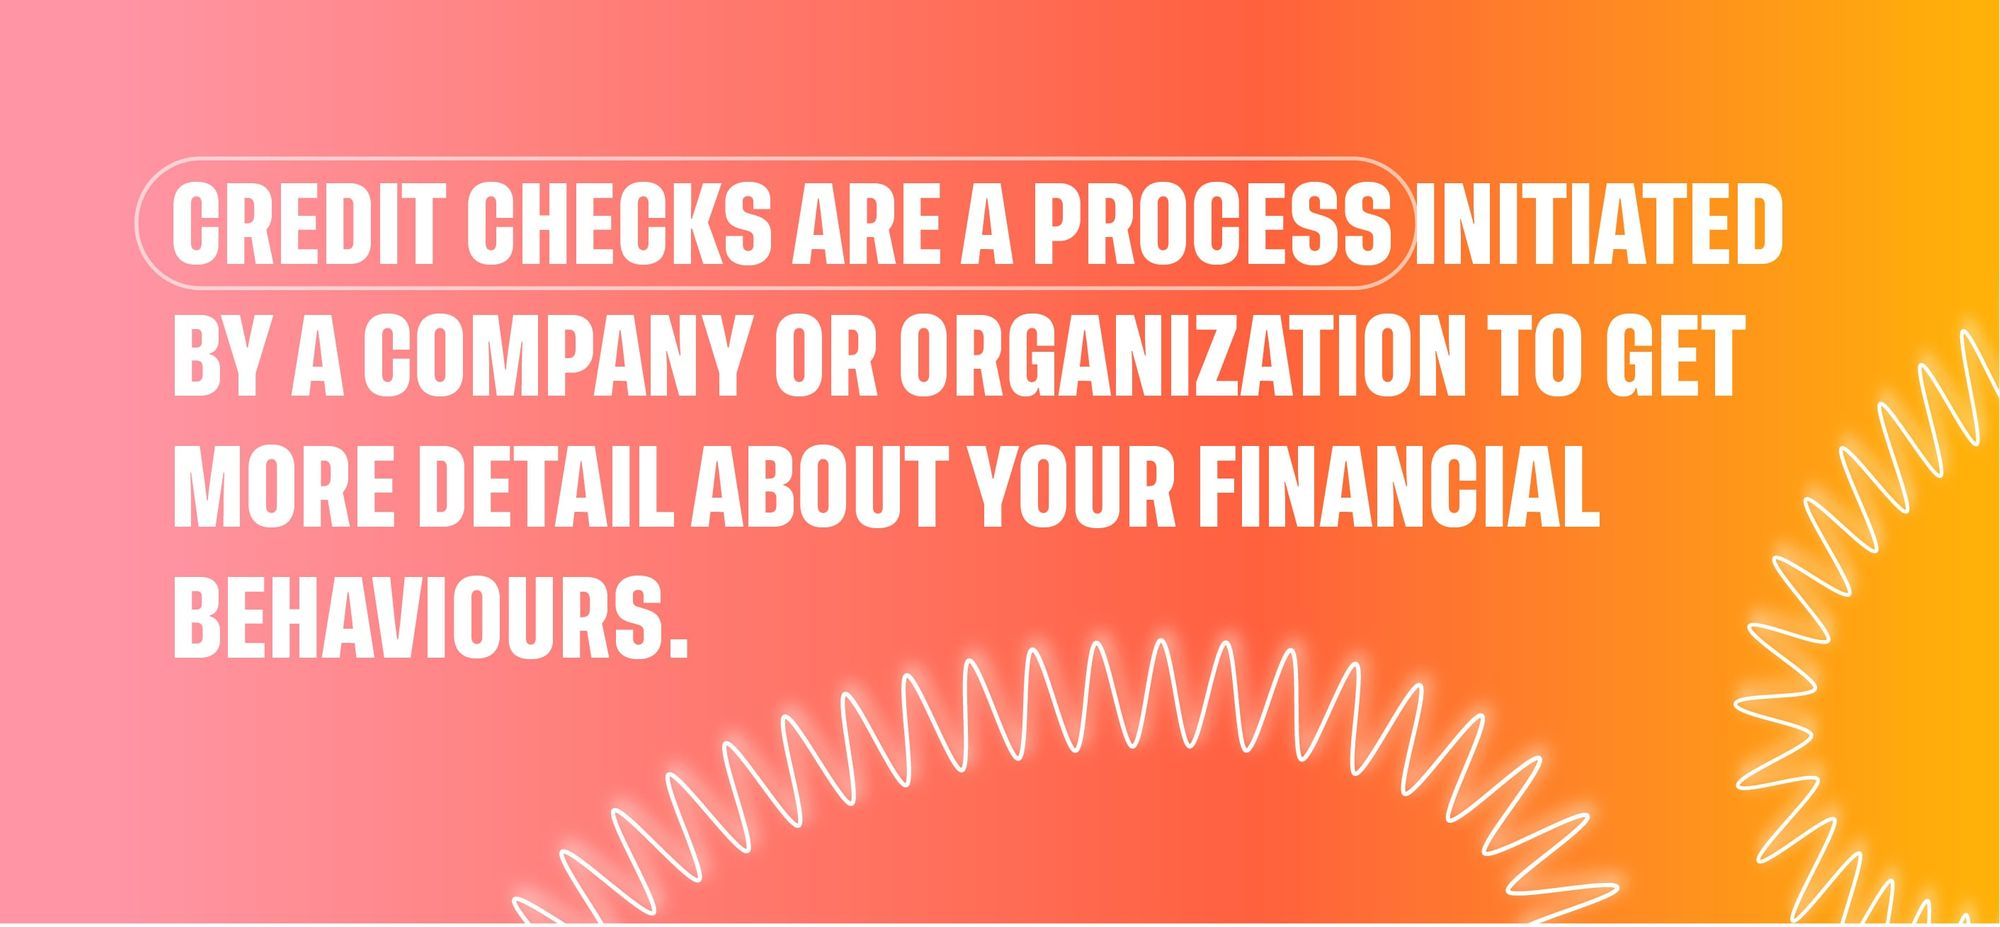 Credit checks are a process initiated by a company or organization to get more detail about your financial behaviours